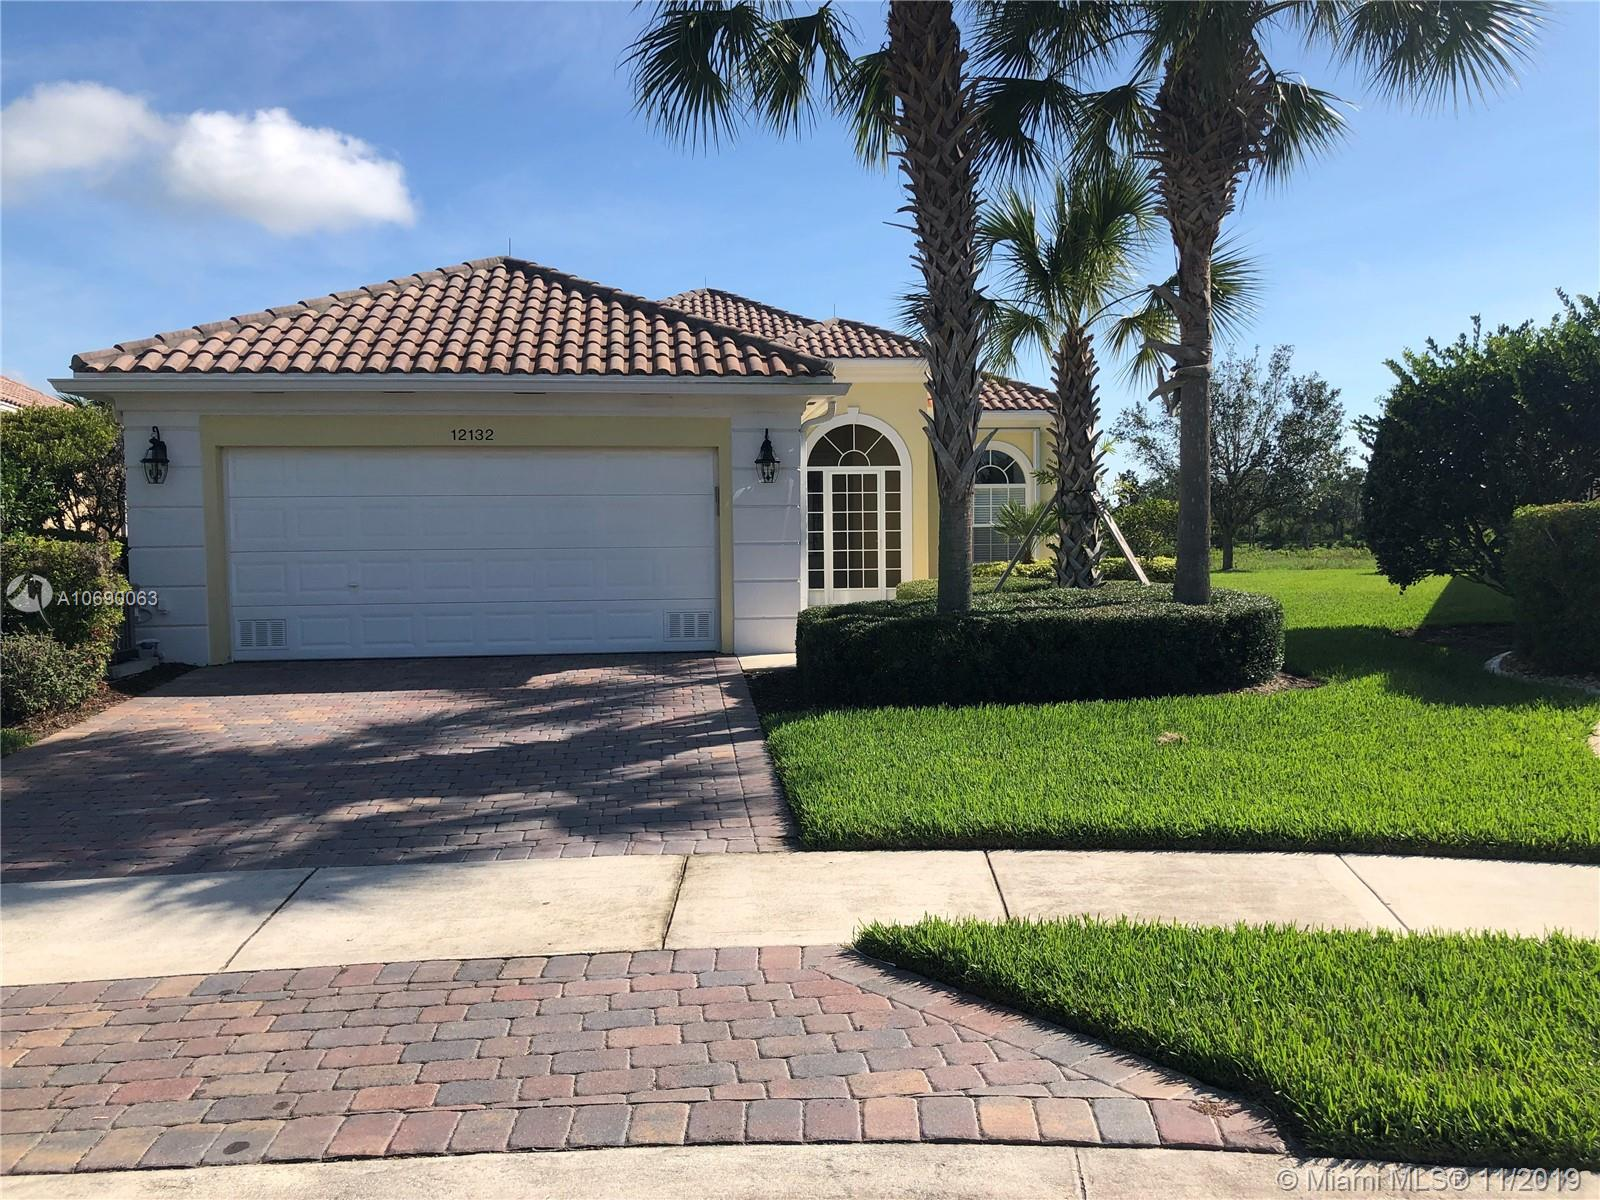 12132 SW Lockhaven Ct, Port St. Lucie, FL 34987